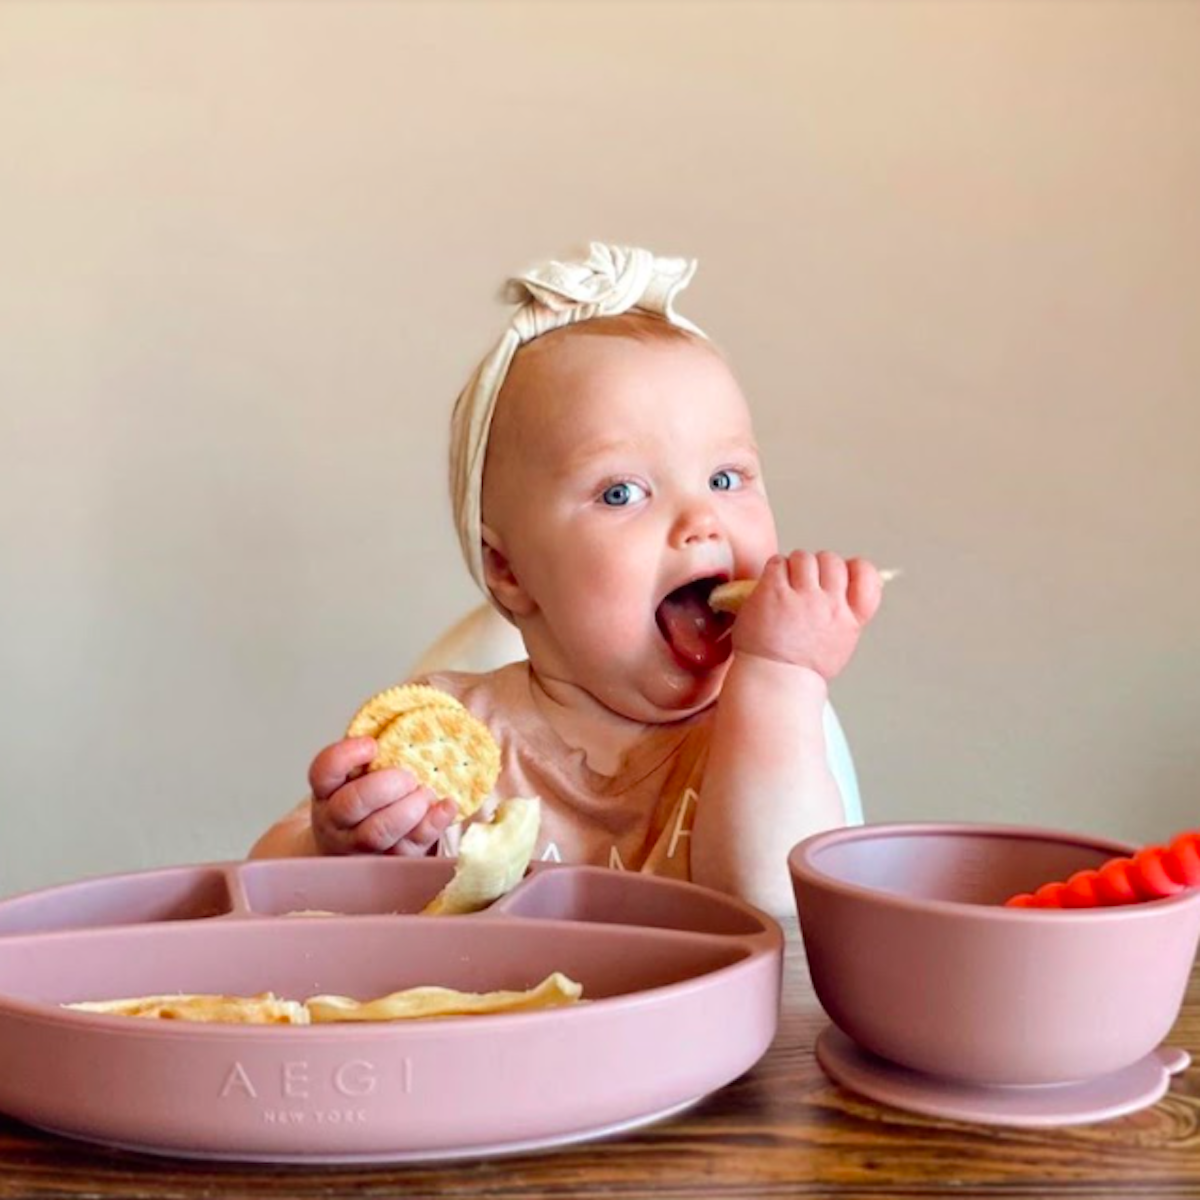 An infant in a highchair with Aegi silicone dinnerware and holding crackers